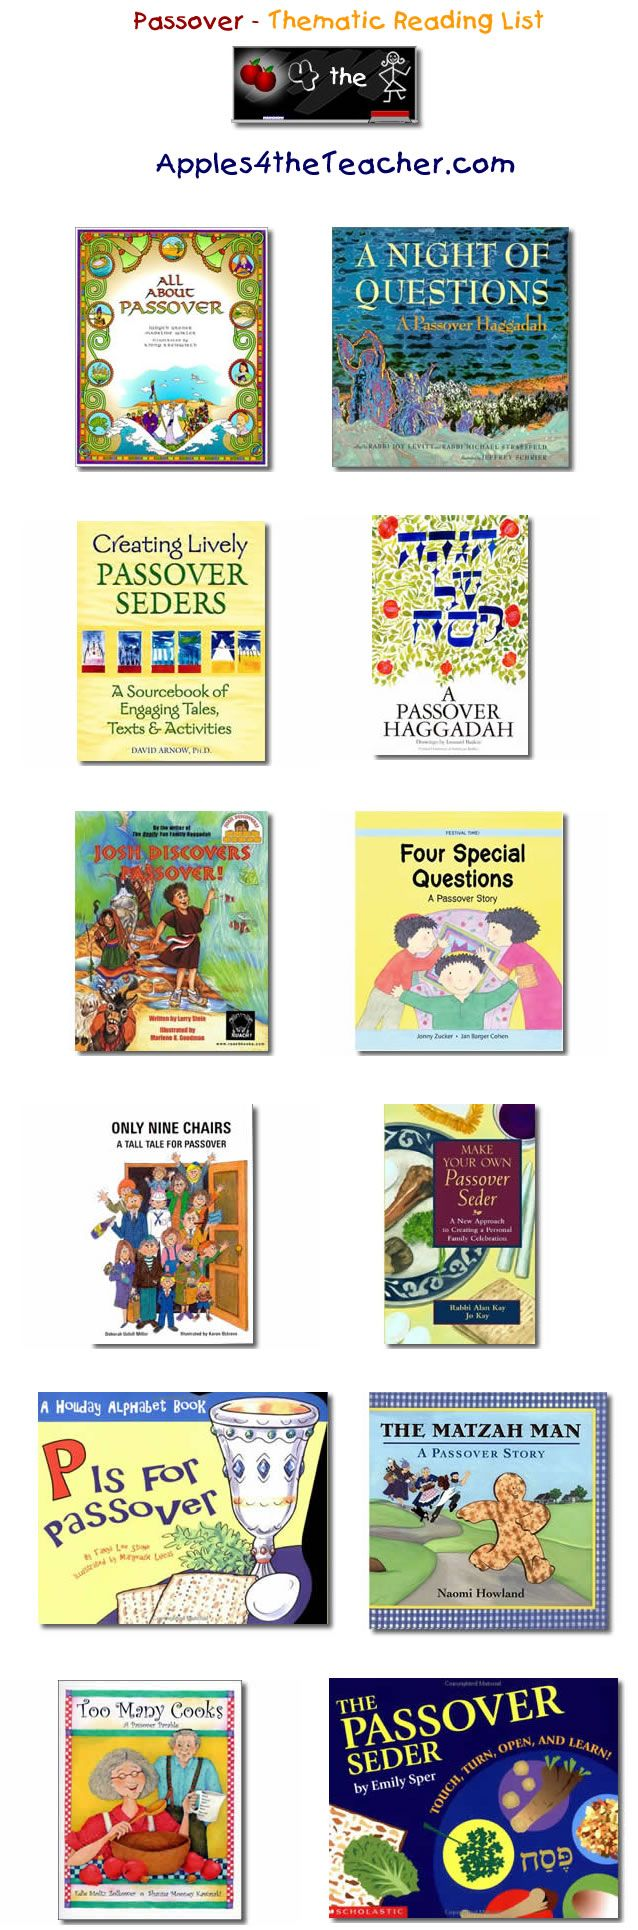 Suggested thematic reading list for Passover - Passover books for kids.   http://www.apples4theteacher.com/holidays/passover/kids-books/